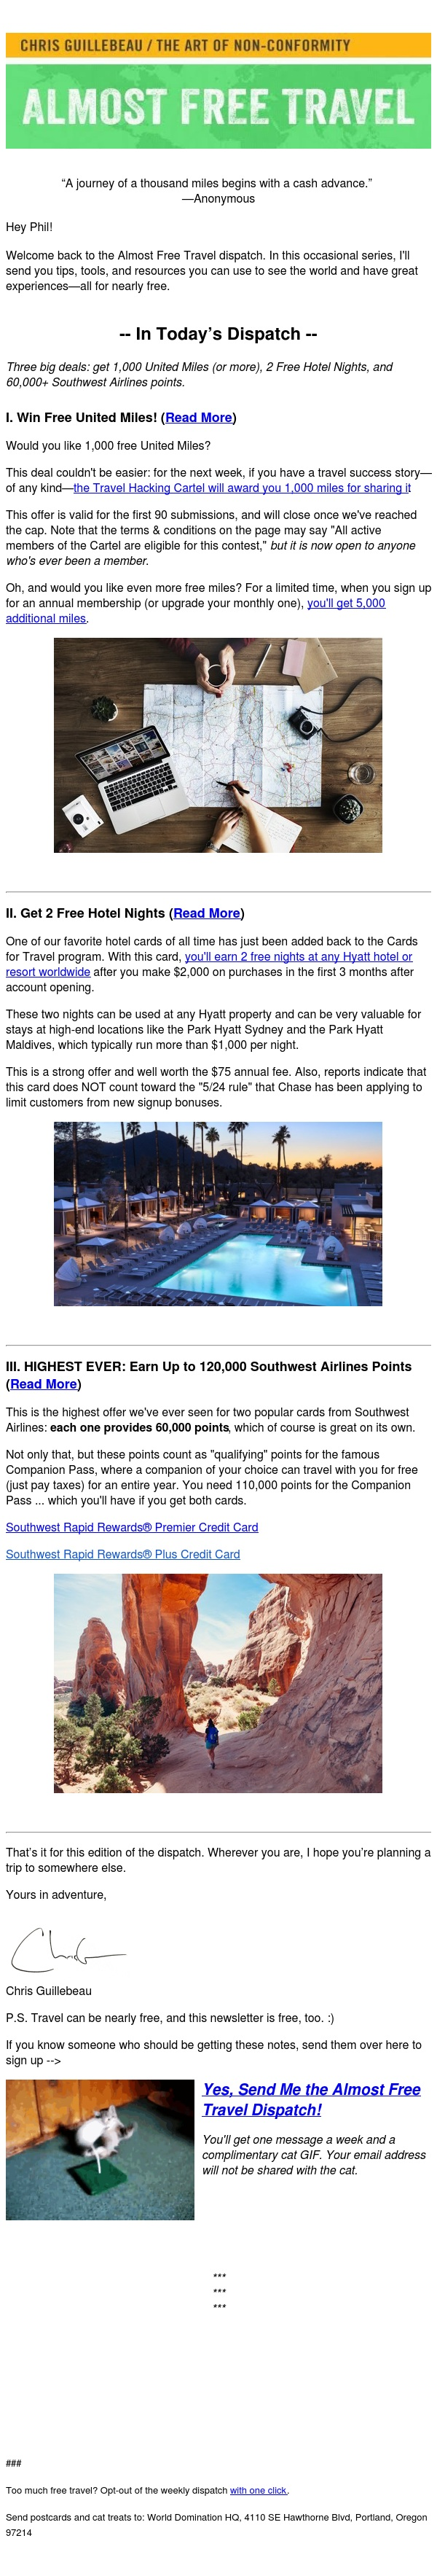 [AFT] Three Big Offers! Get Free Hotel Nights, Points, and Miles